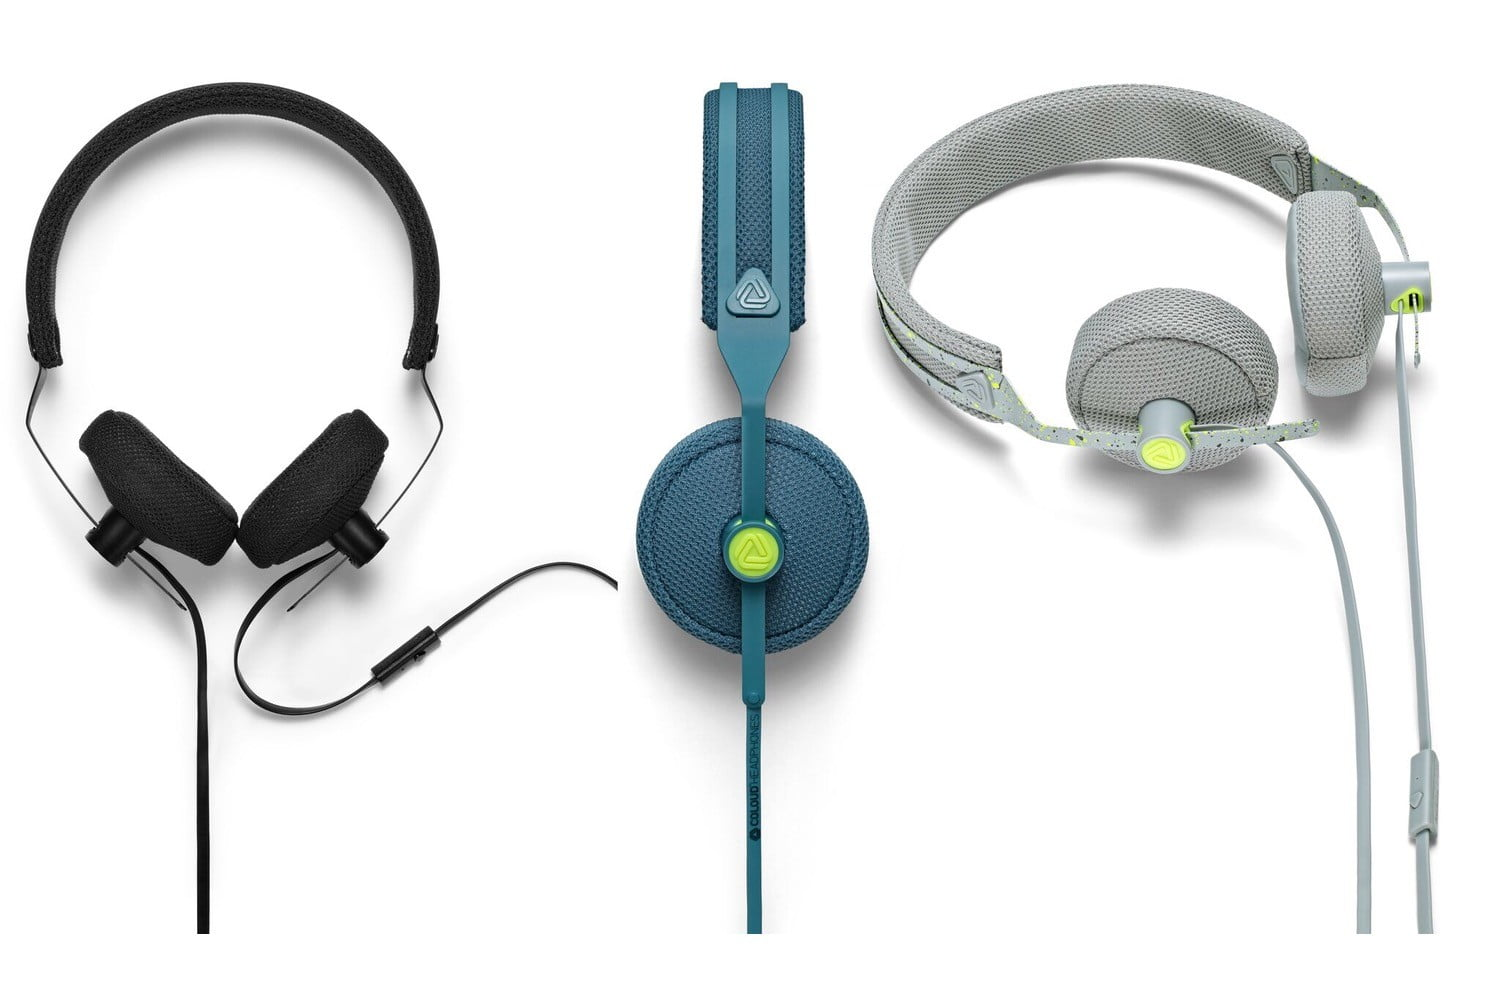 coloud relaunches introduces no 4 8 16 headphones